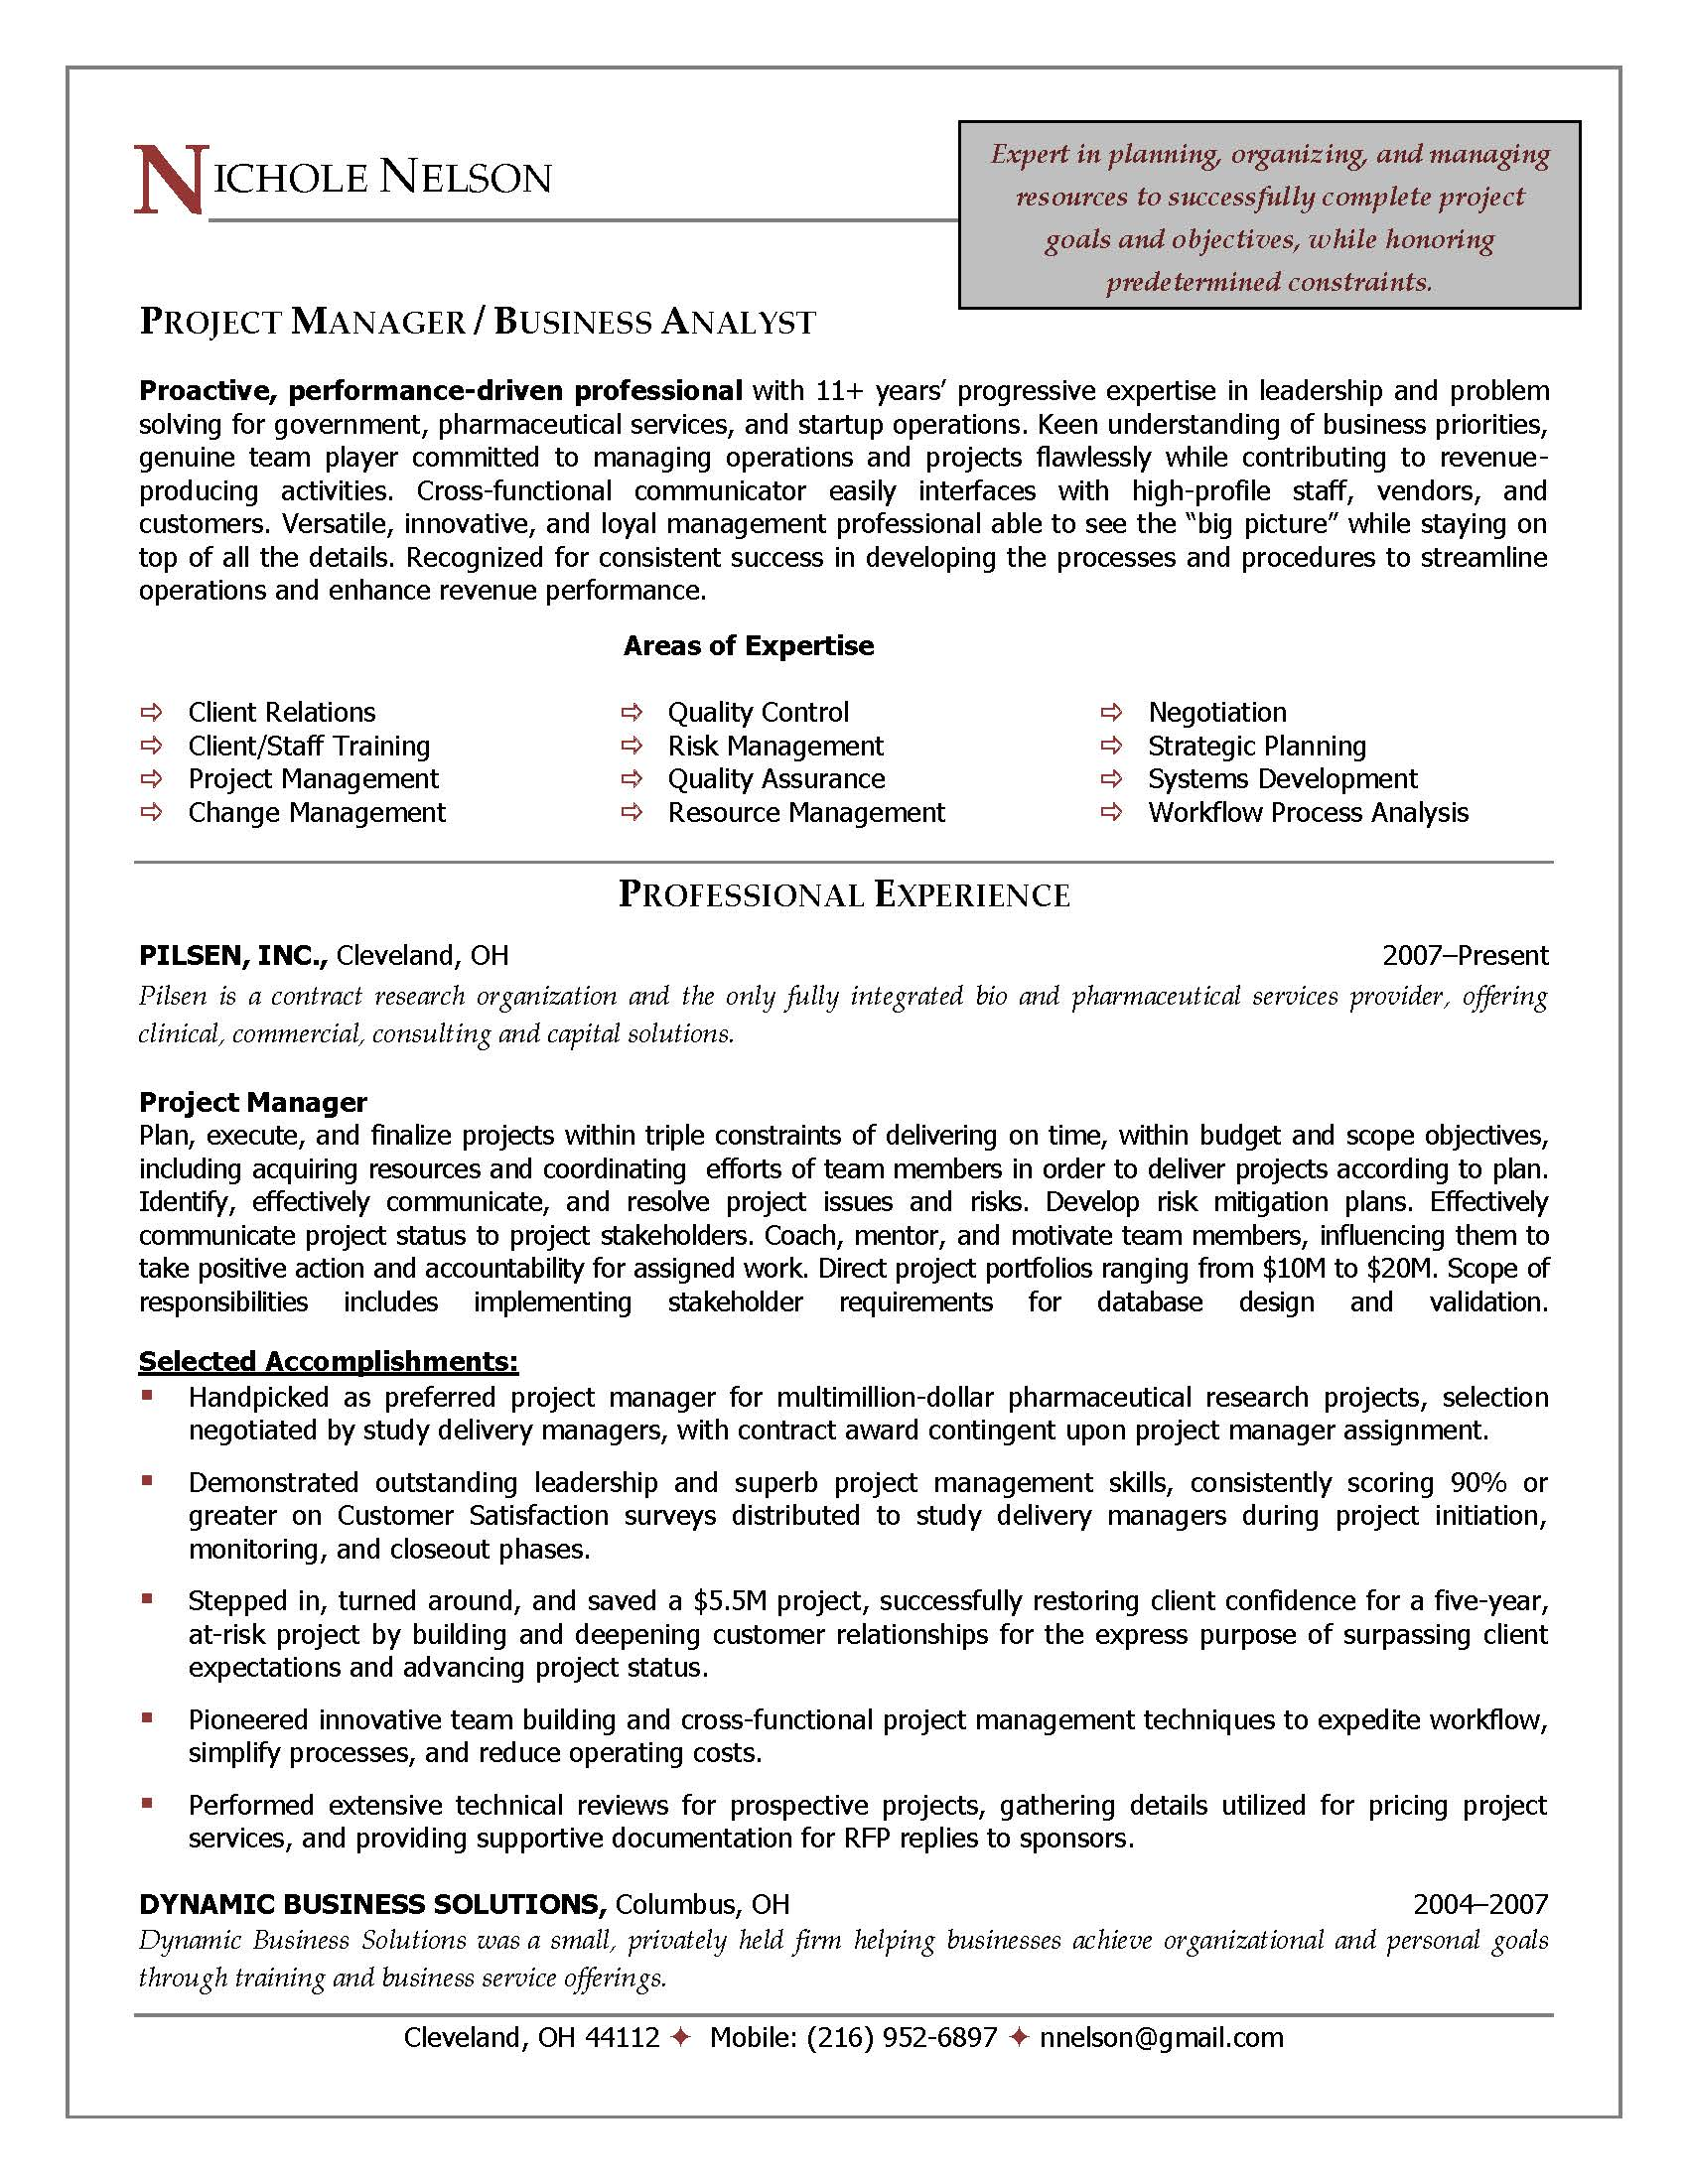 small business consulting resume business consulting resume project manager resume sample small business consulting resumehtml - Business Consultant Resume Sample